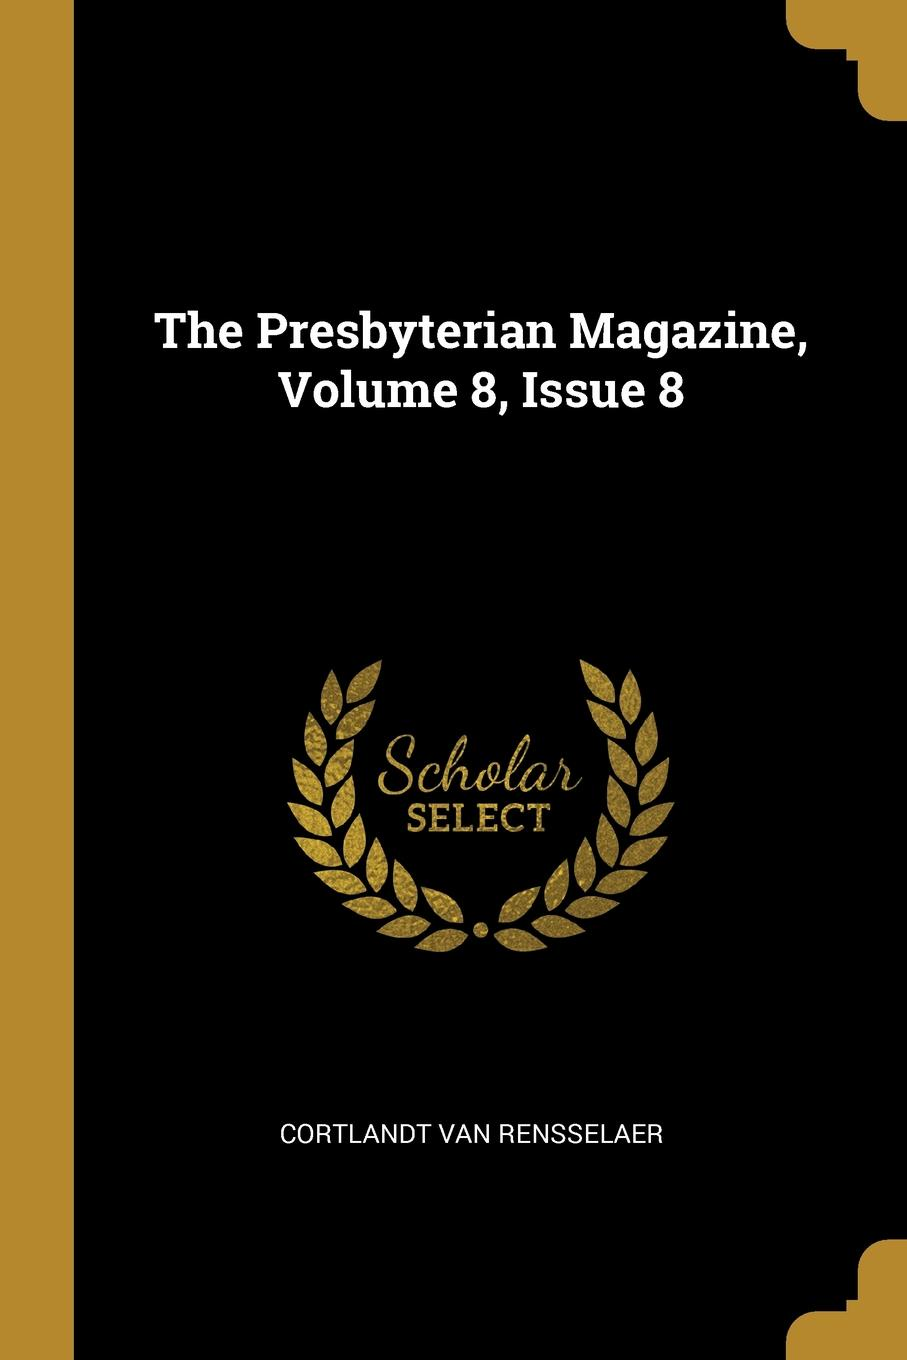 Cortlandt Van Rensselaer. The Presbyterian Magazine, Volume 8, Issue 8